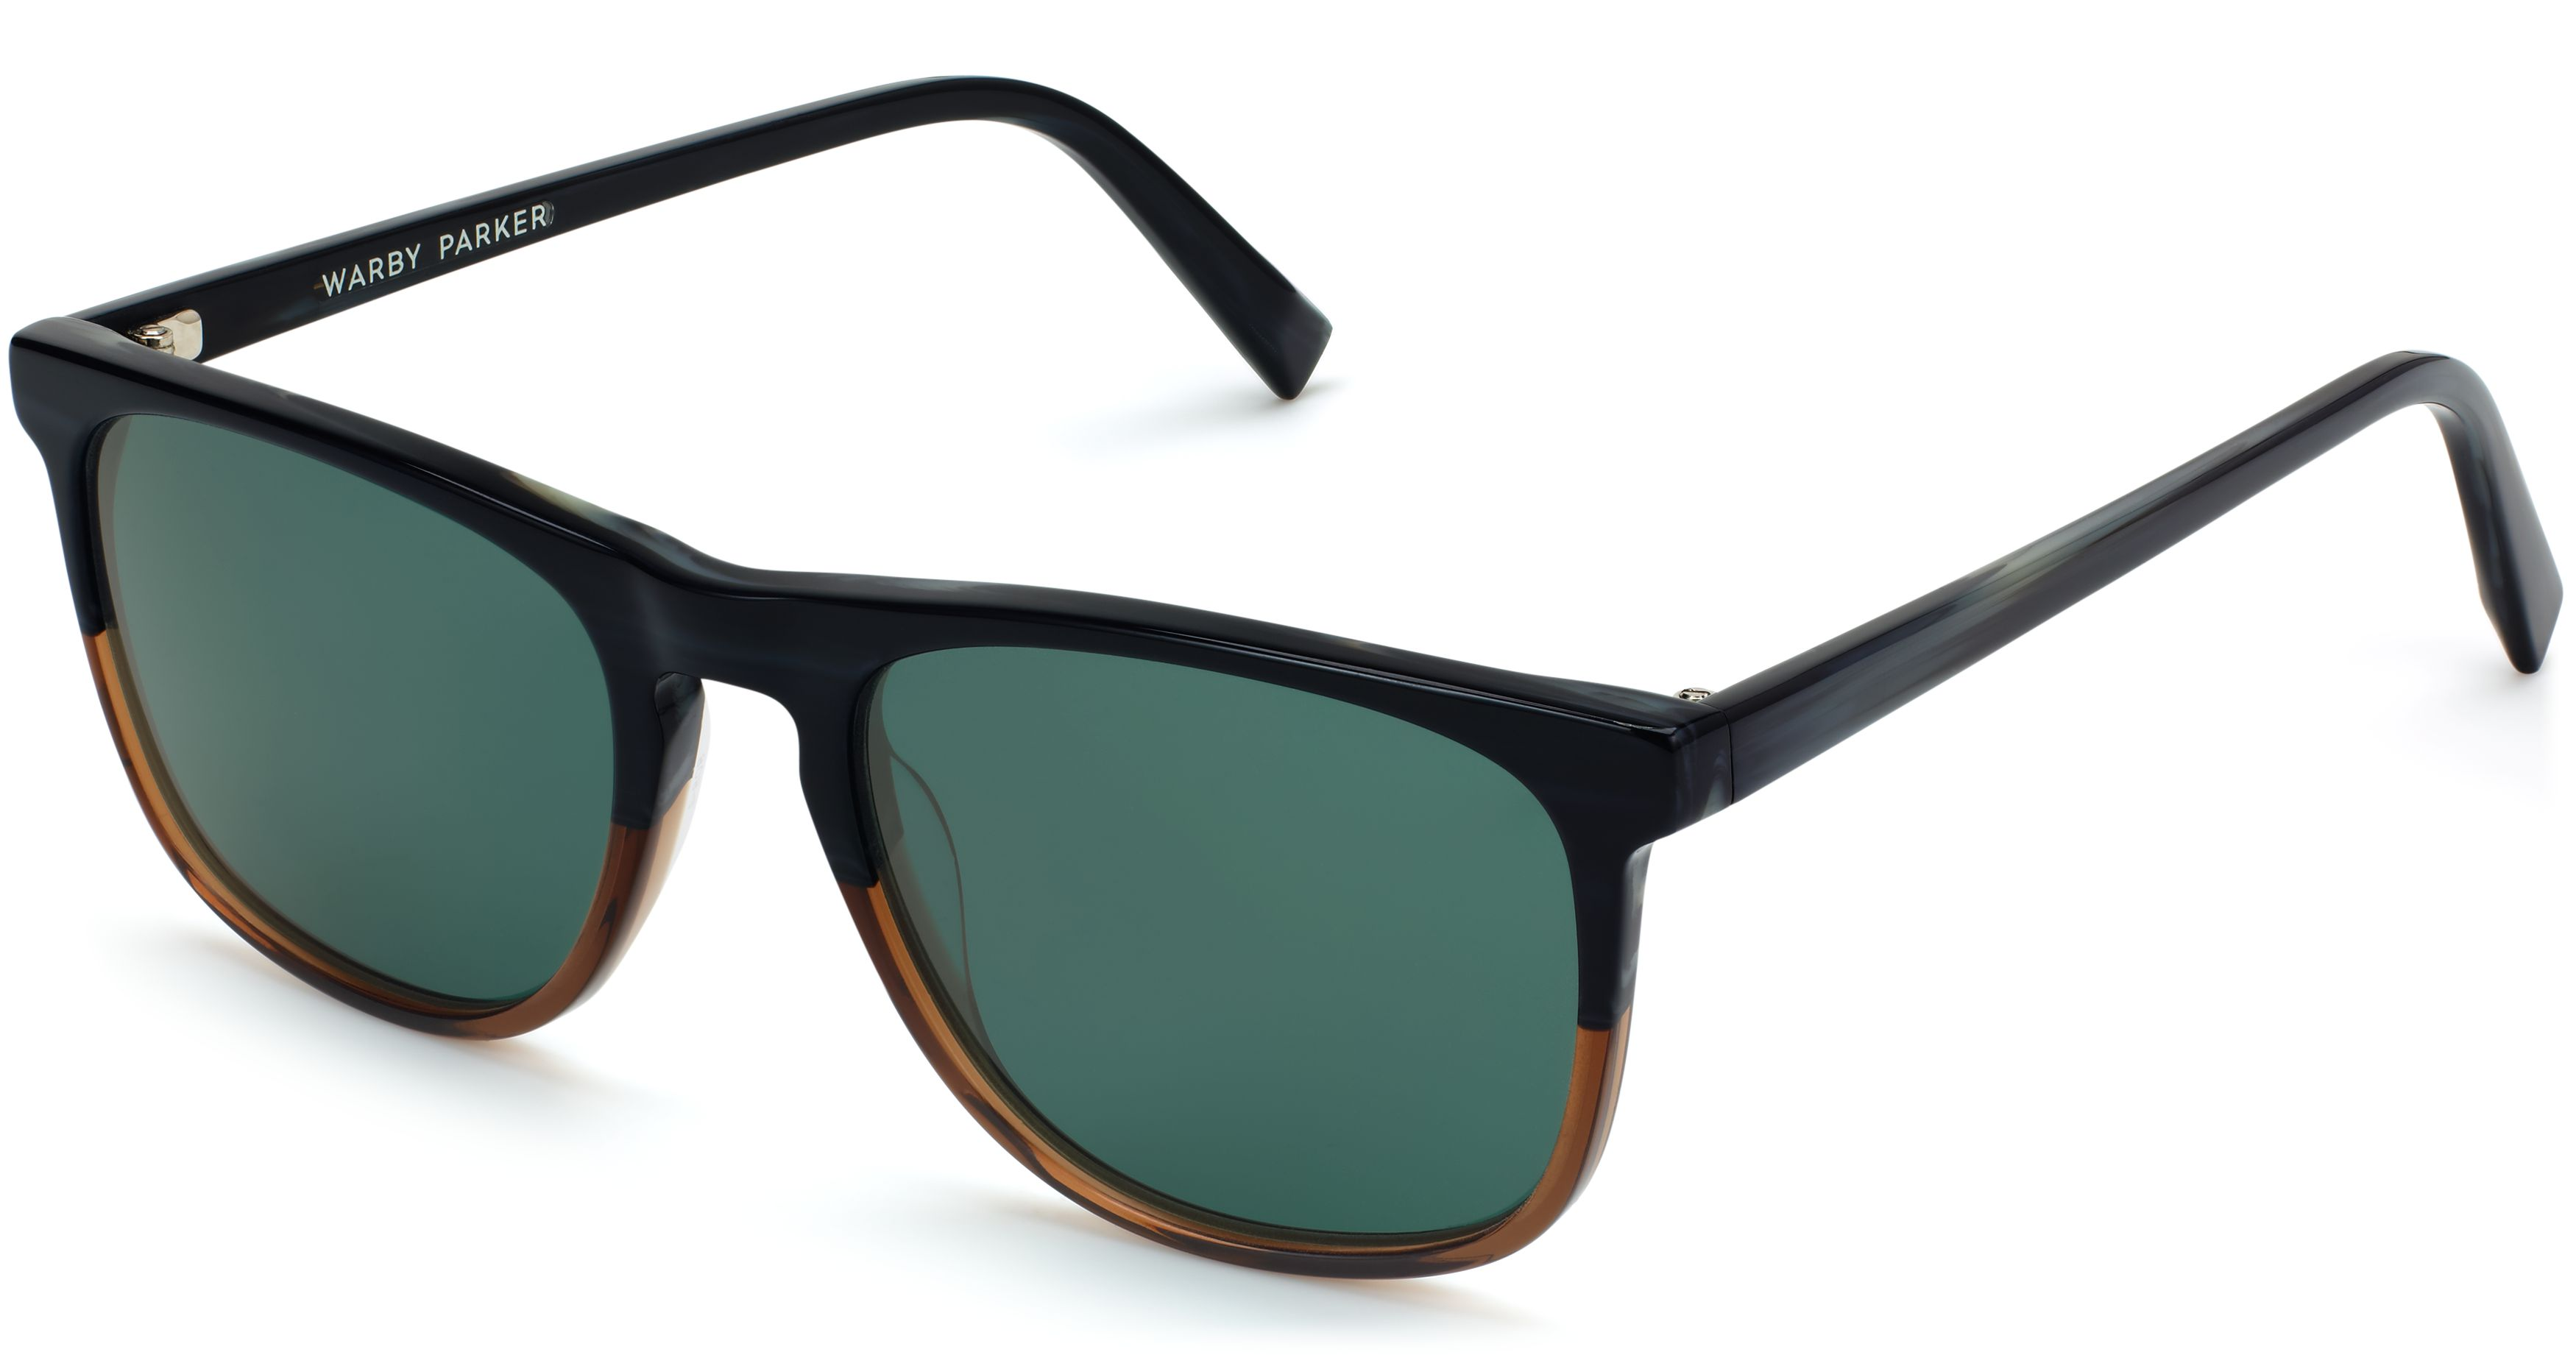 c6070fb0c71 Madox Sunglasses in Antique Shale Fade with Green Grey lenses for Men